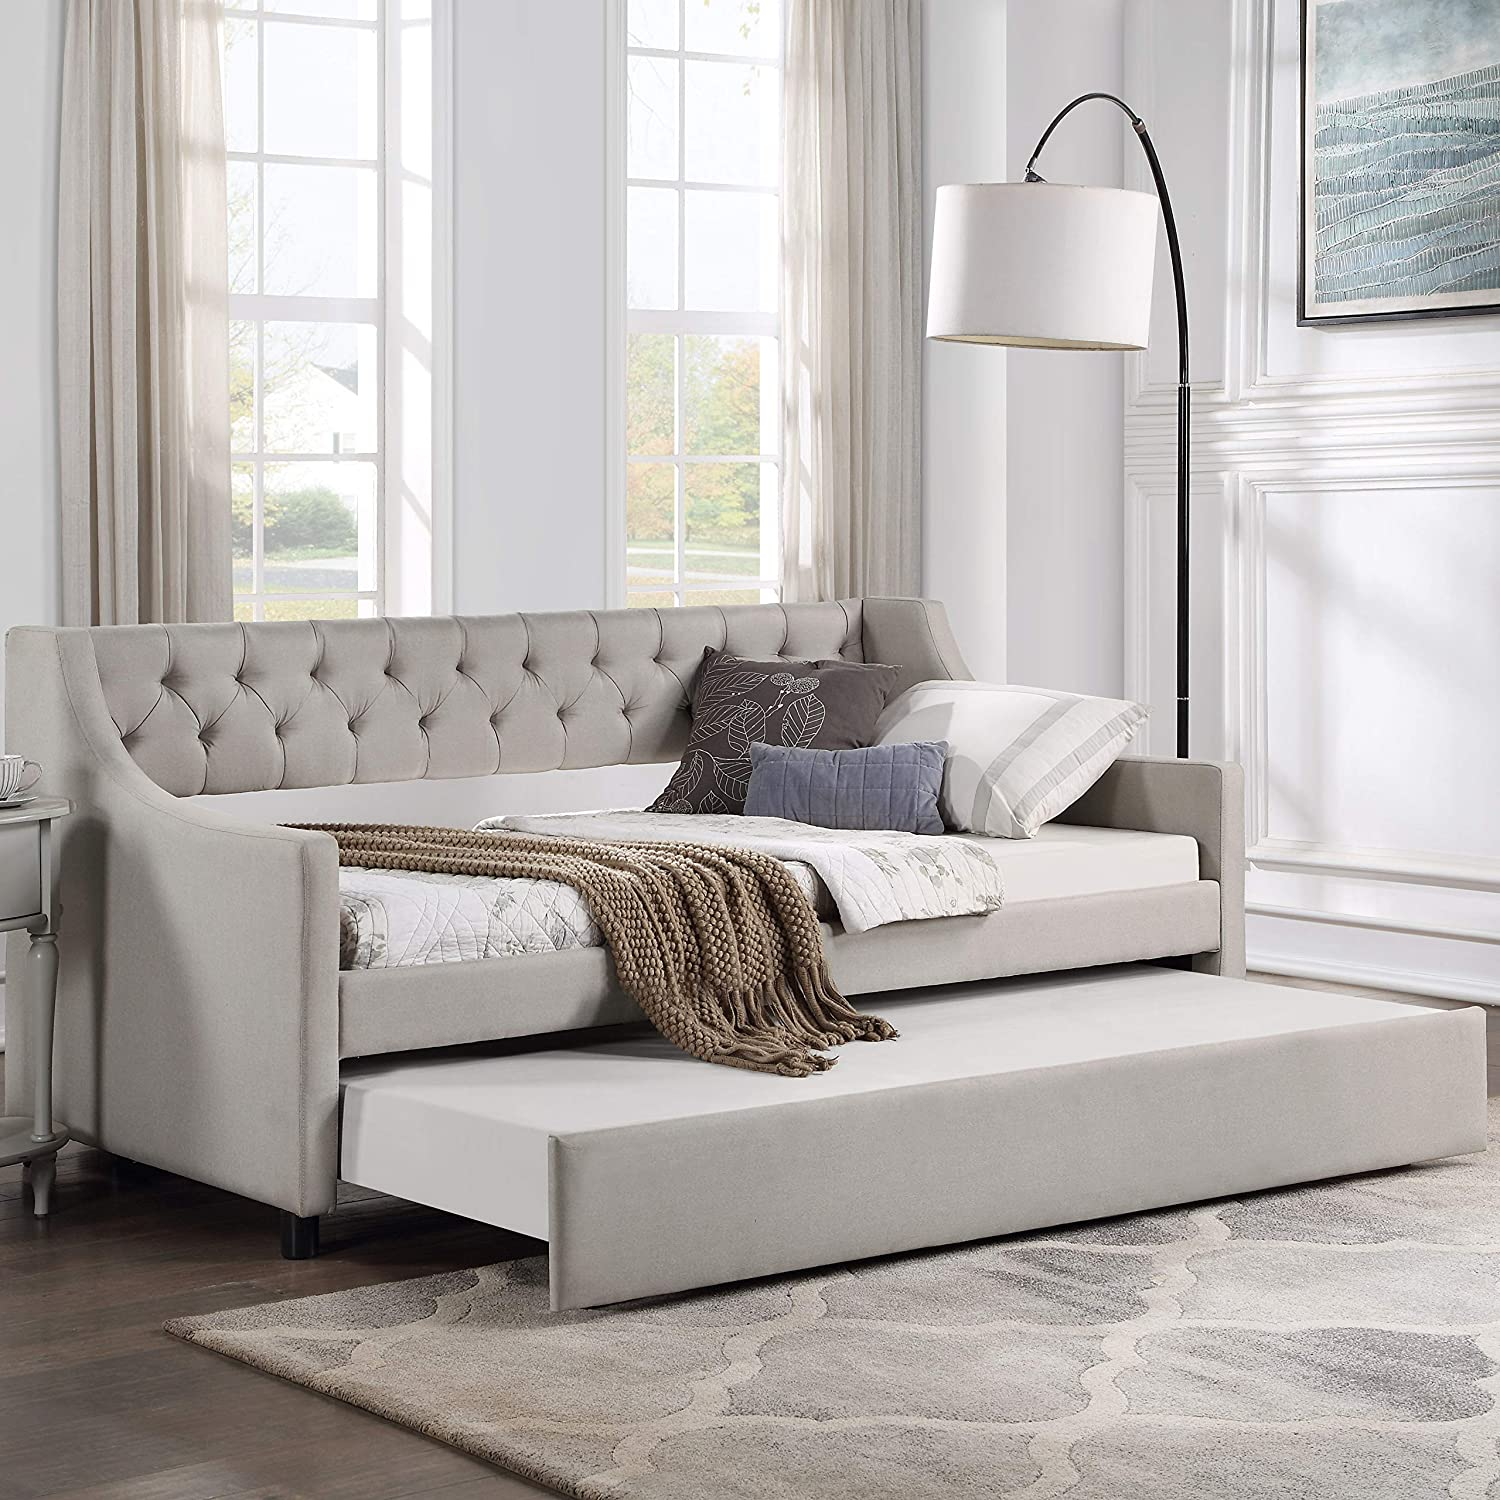 Daybed with Max 45% OFF A Trundle Upholstered Bed Tufted Sofa Philadelphia Mall